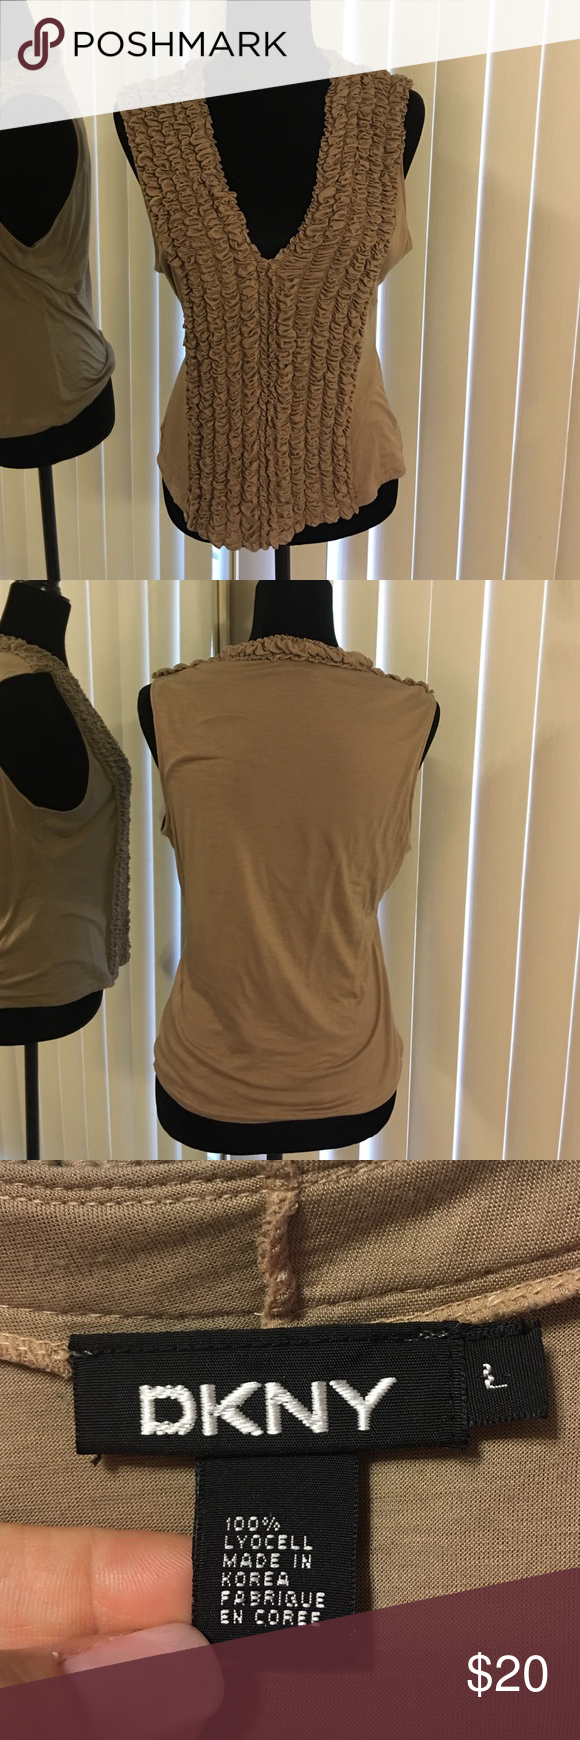 DKNY tan sleeveless knit  blouse💎 DKNY tan sleeveless knit  blouse - great detailing on the front looks great on its own during summer or with a jacket in the fall! This is a reposh- the blouse is a little short for my body. DKNY Tops Tank Tops